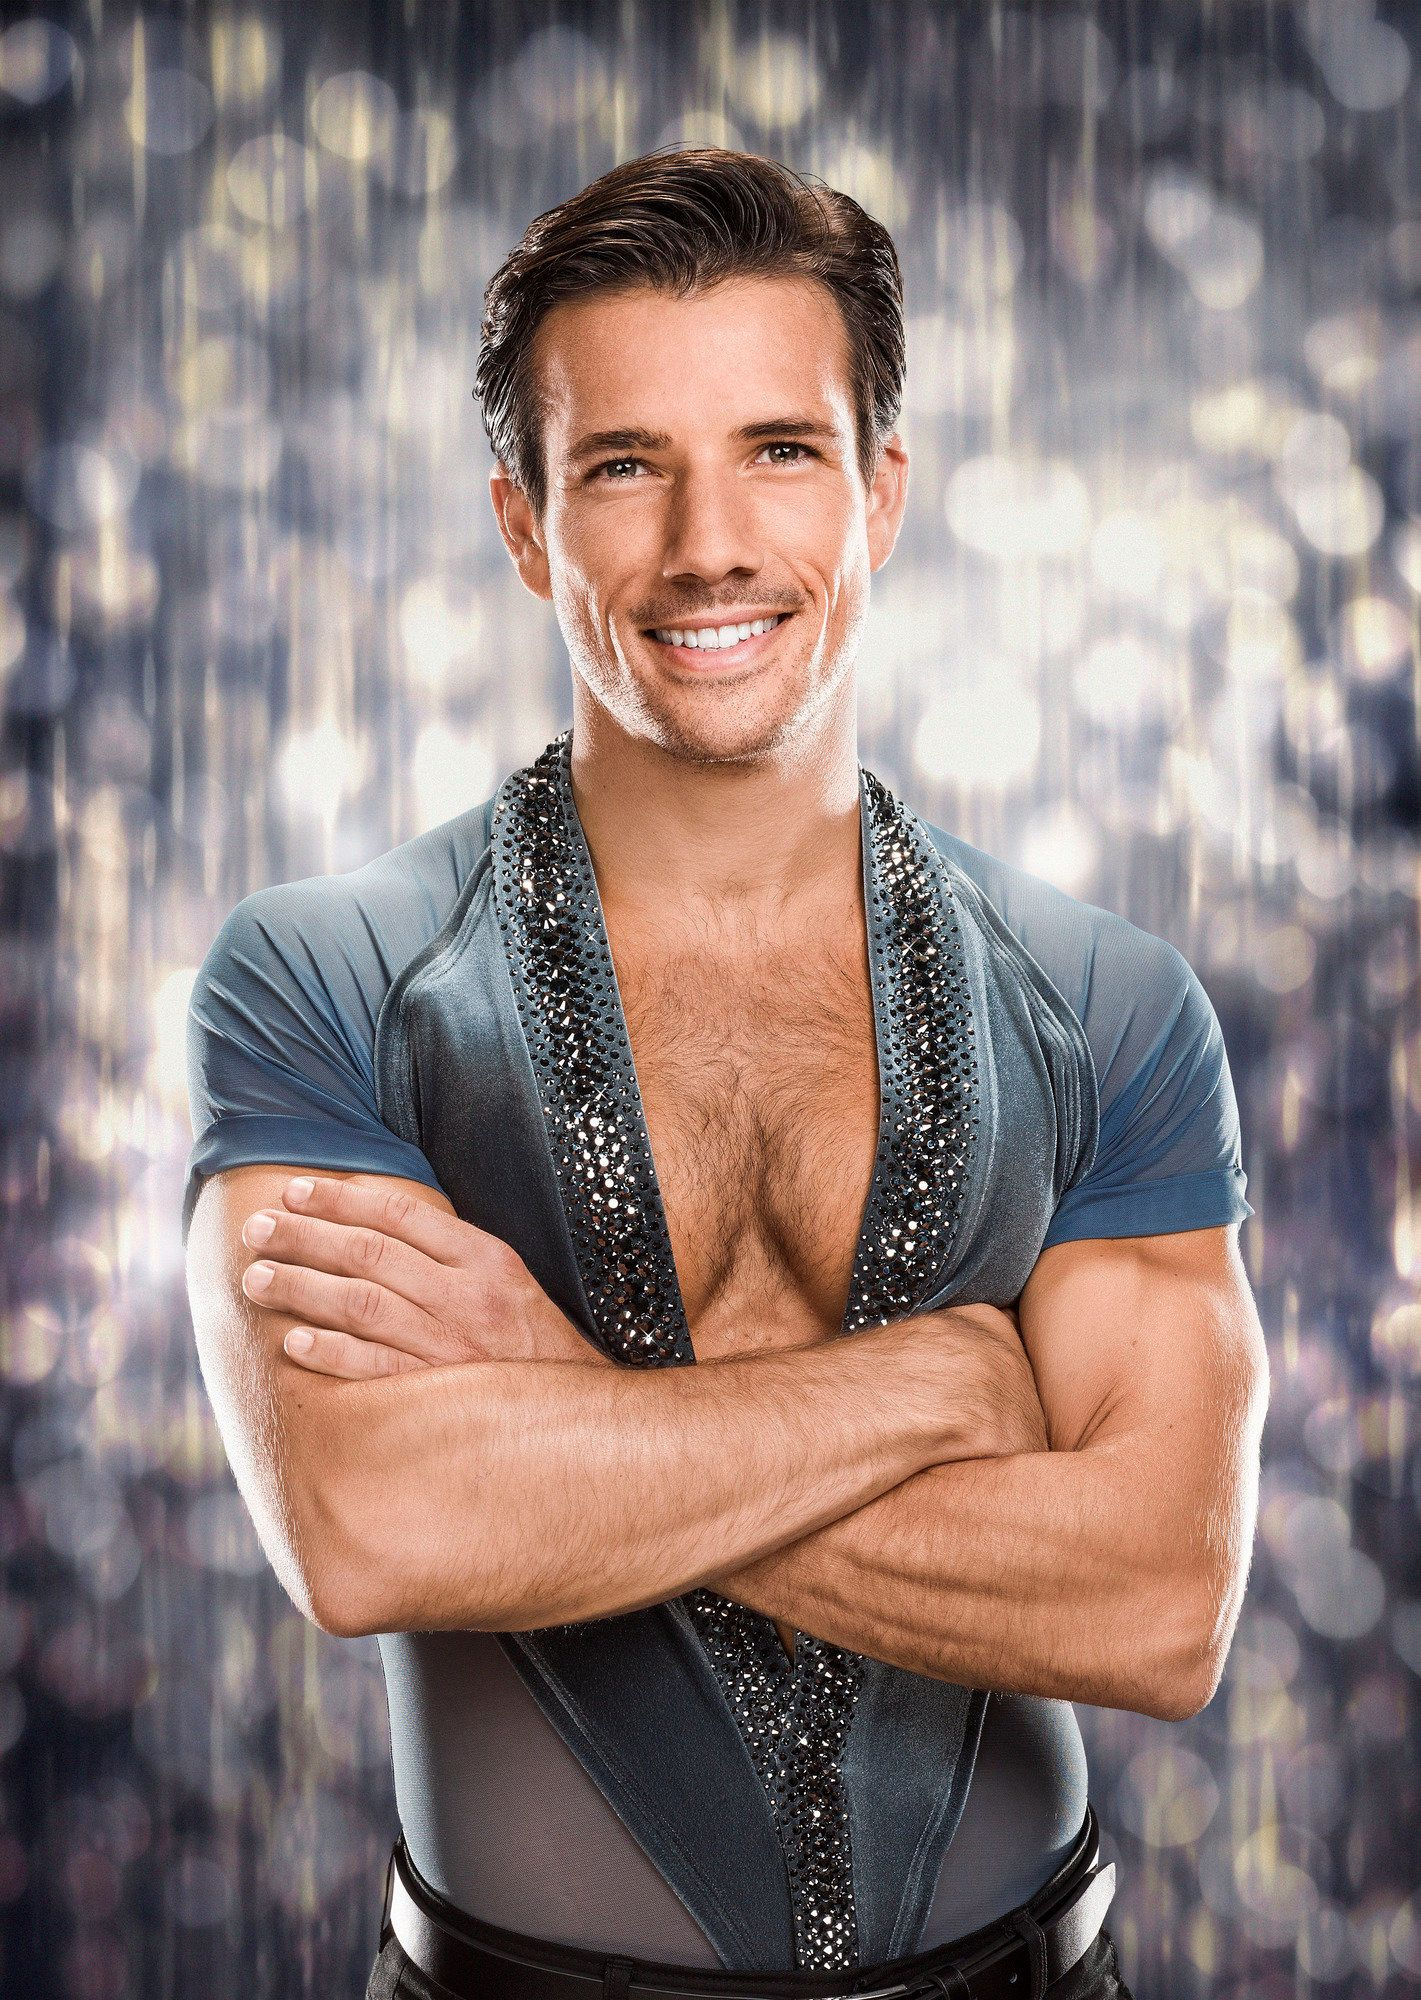 Danny Mac attended drama school for three